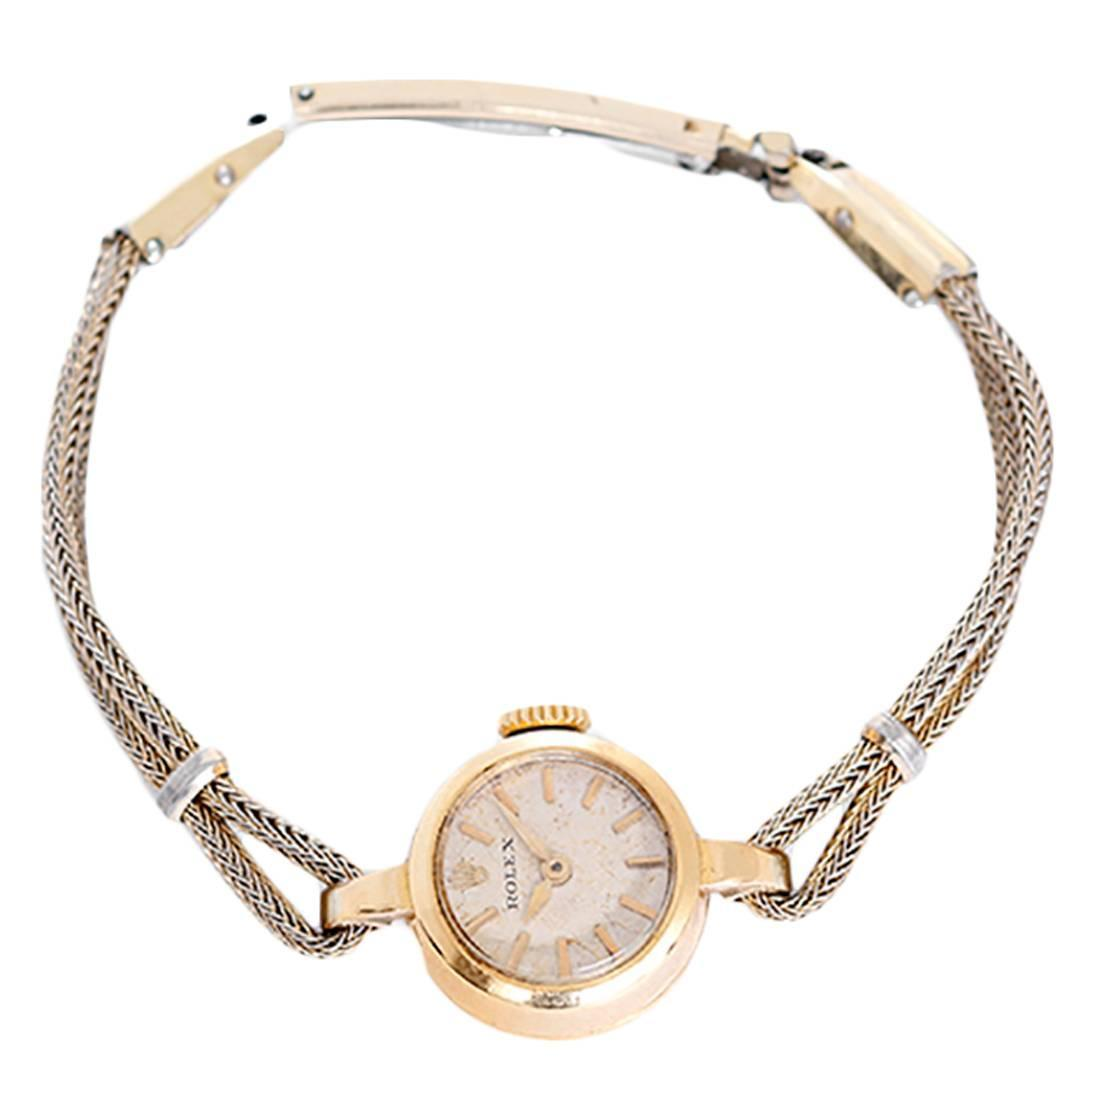 Rolex Lady S Yellow Gold Rope Style Bracelet Wristwatch At